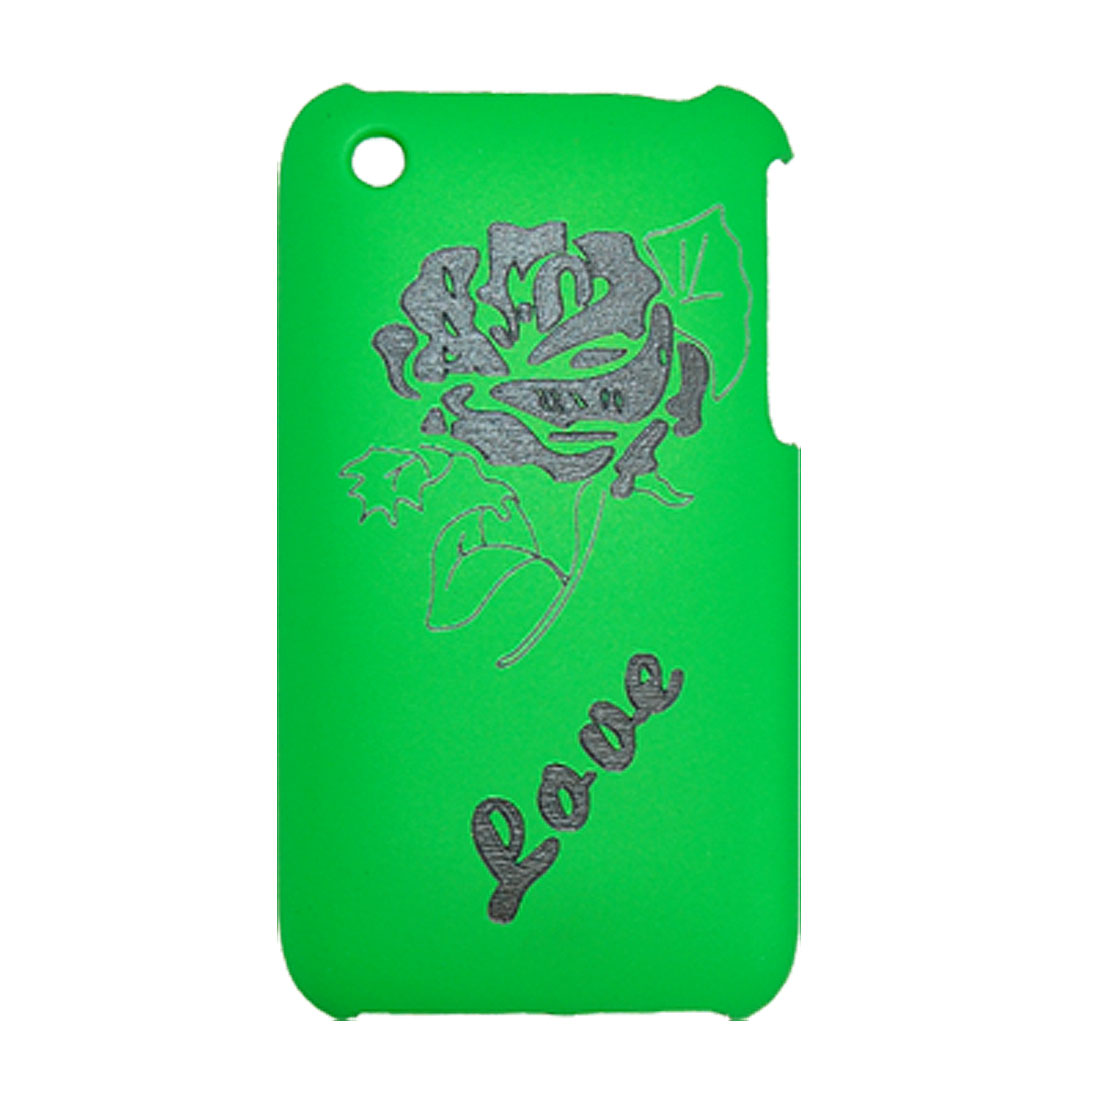 Professional Protector Back Cover Case for iPhone 3G